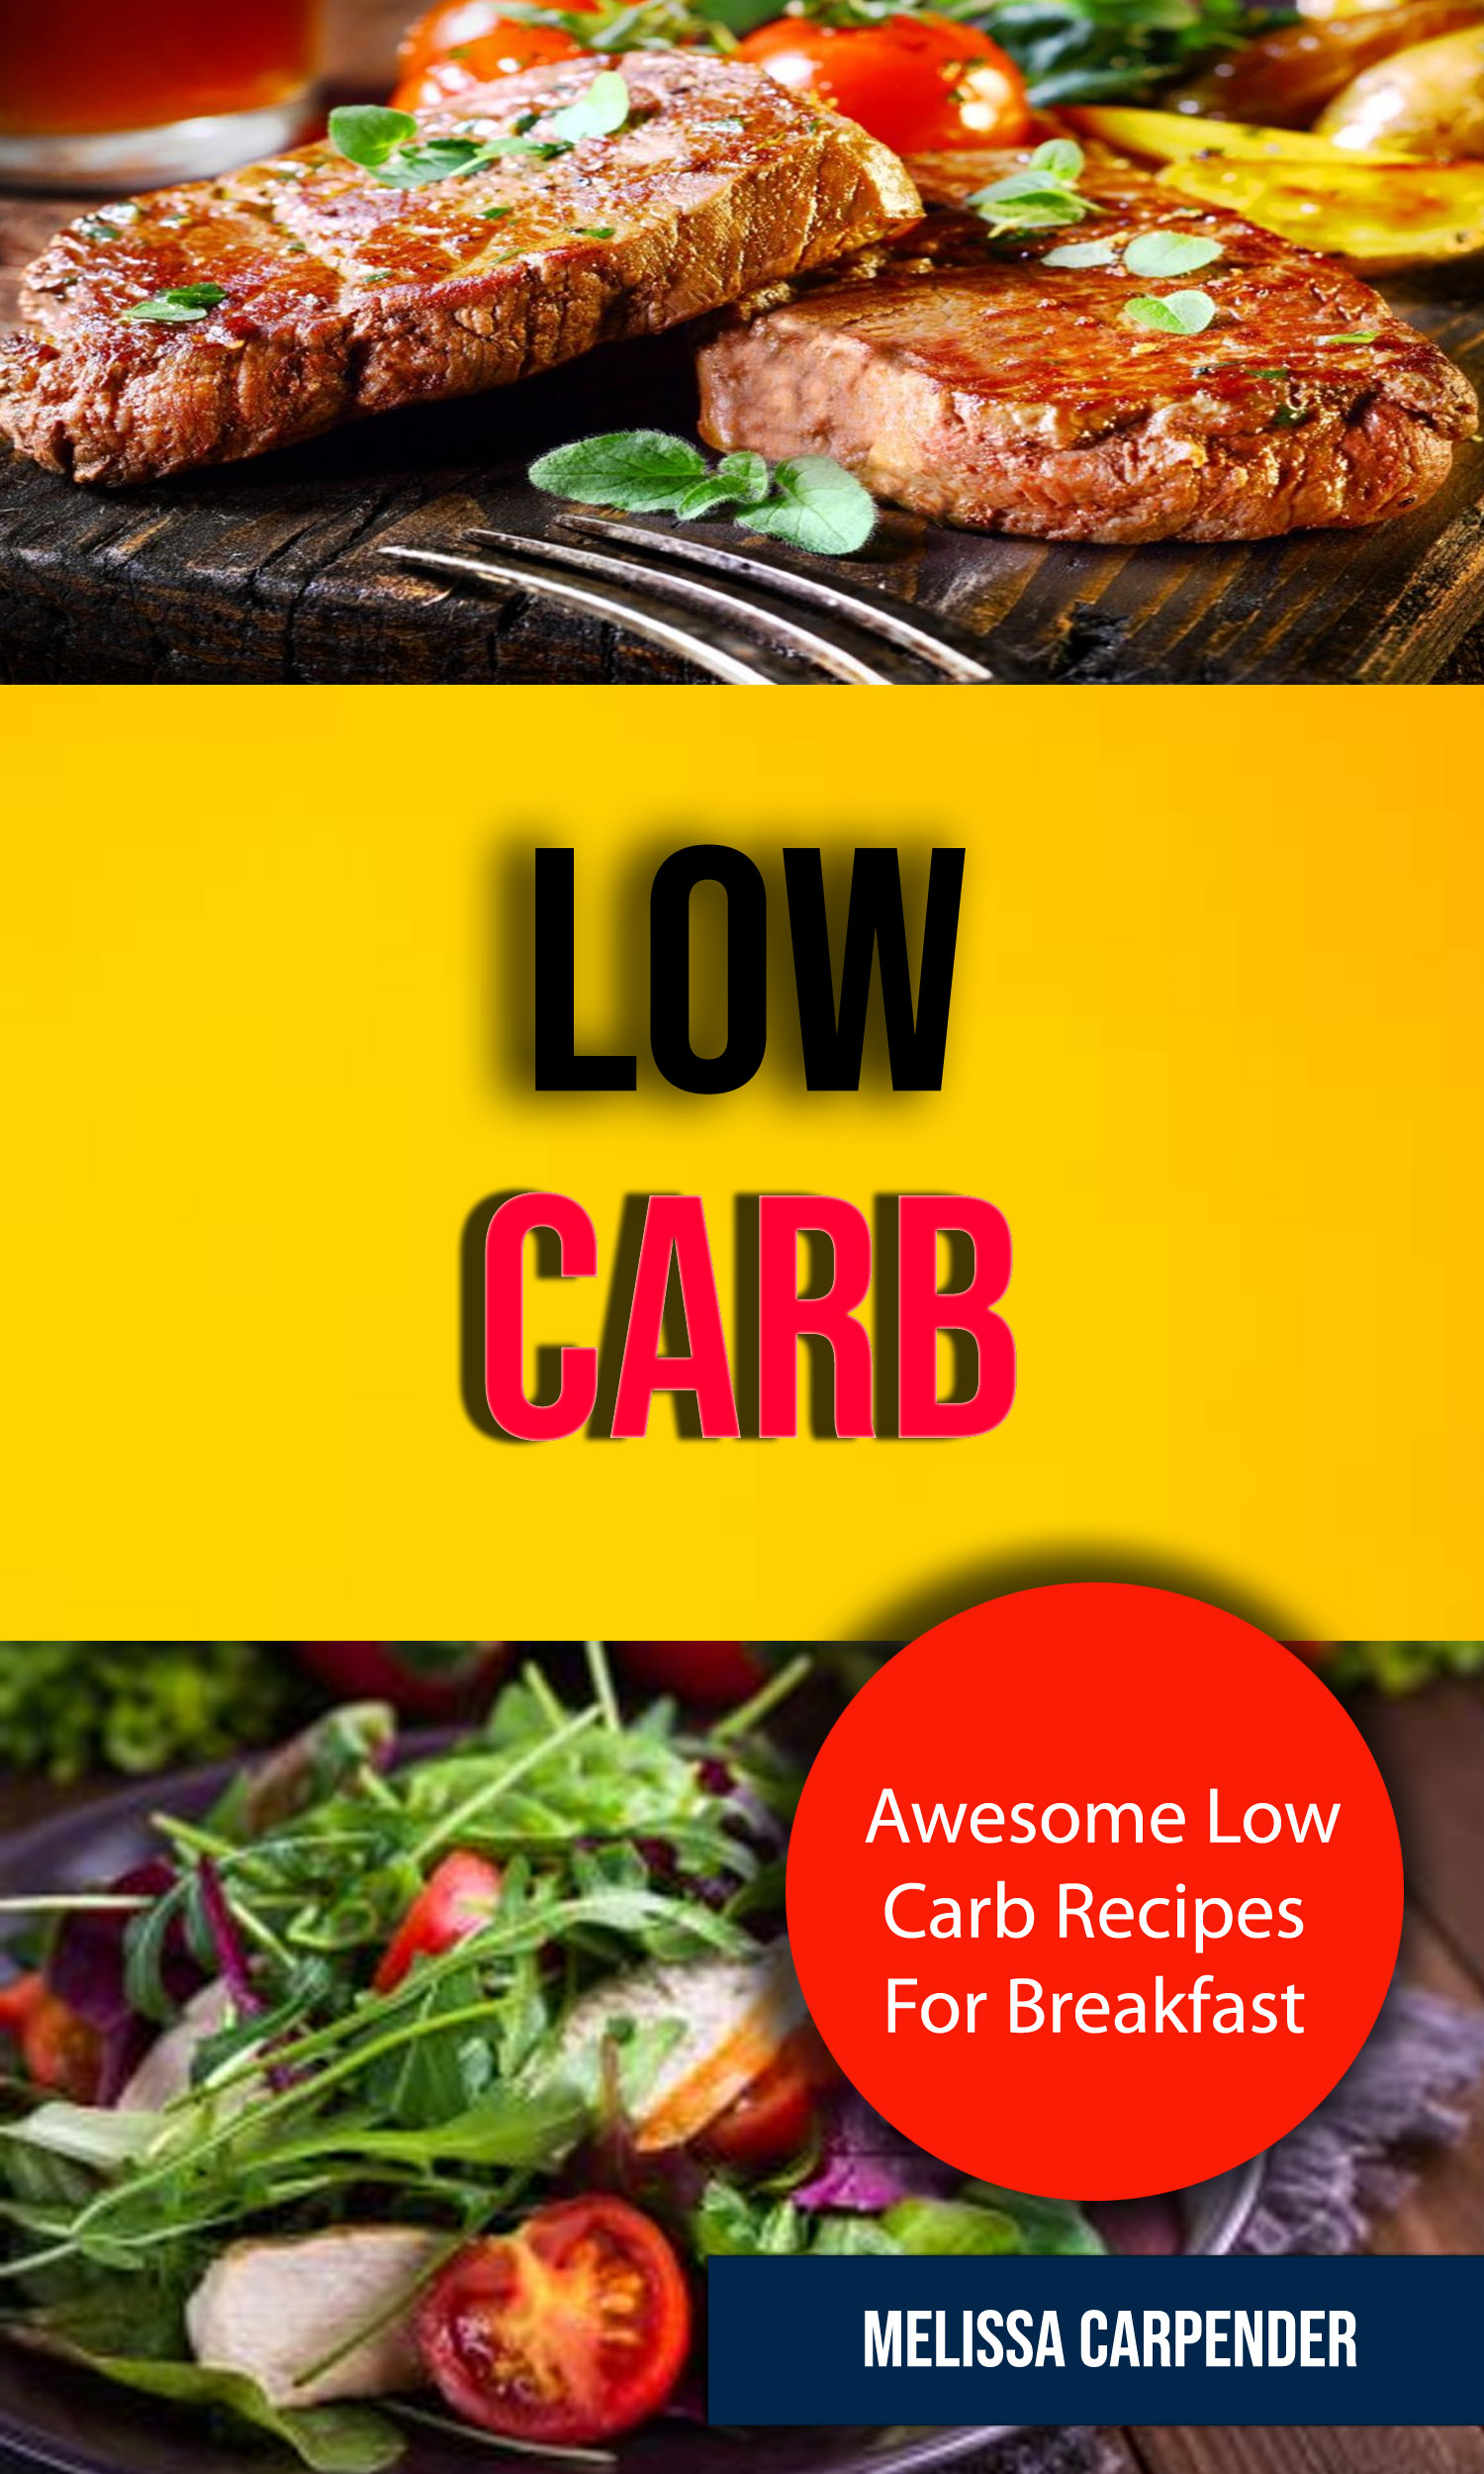 Low carb: awesome low carb recipes for breakfast